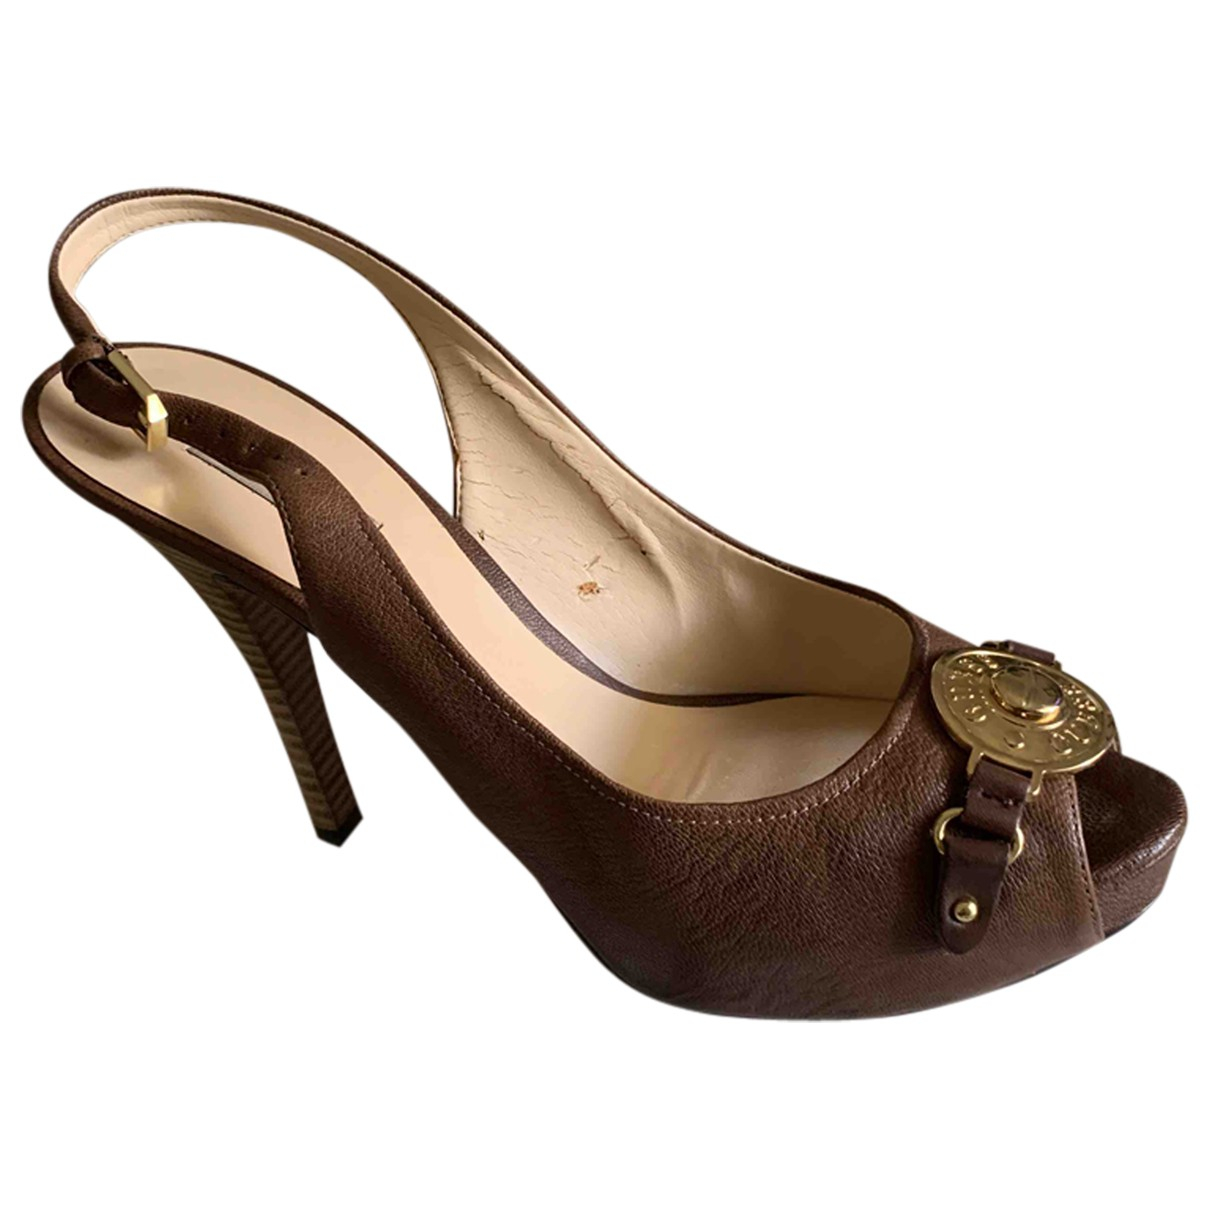 Guess N Brown Leather Heels for Women 40 EU